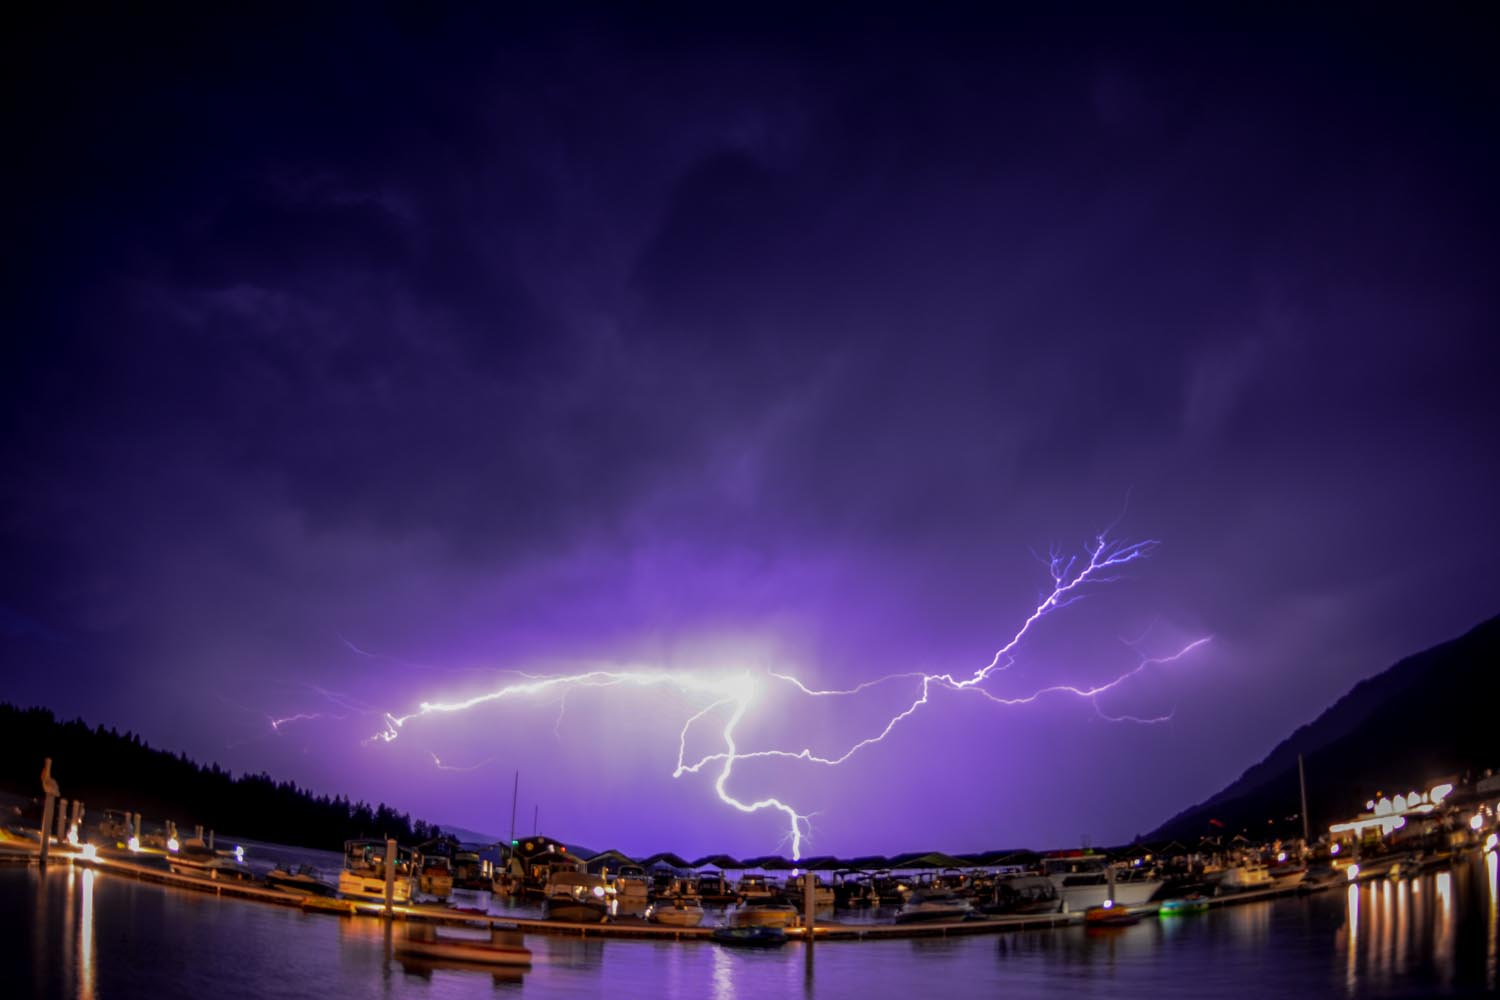 Lightning over Pend Oreille Lake